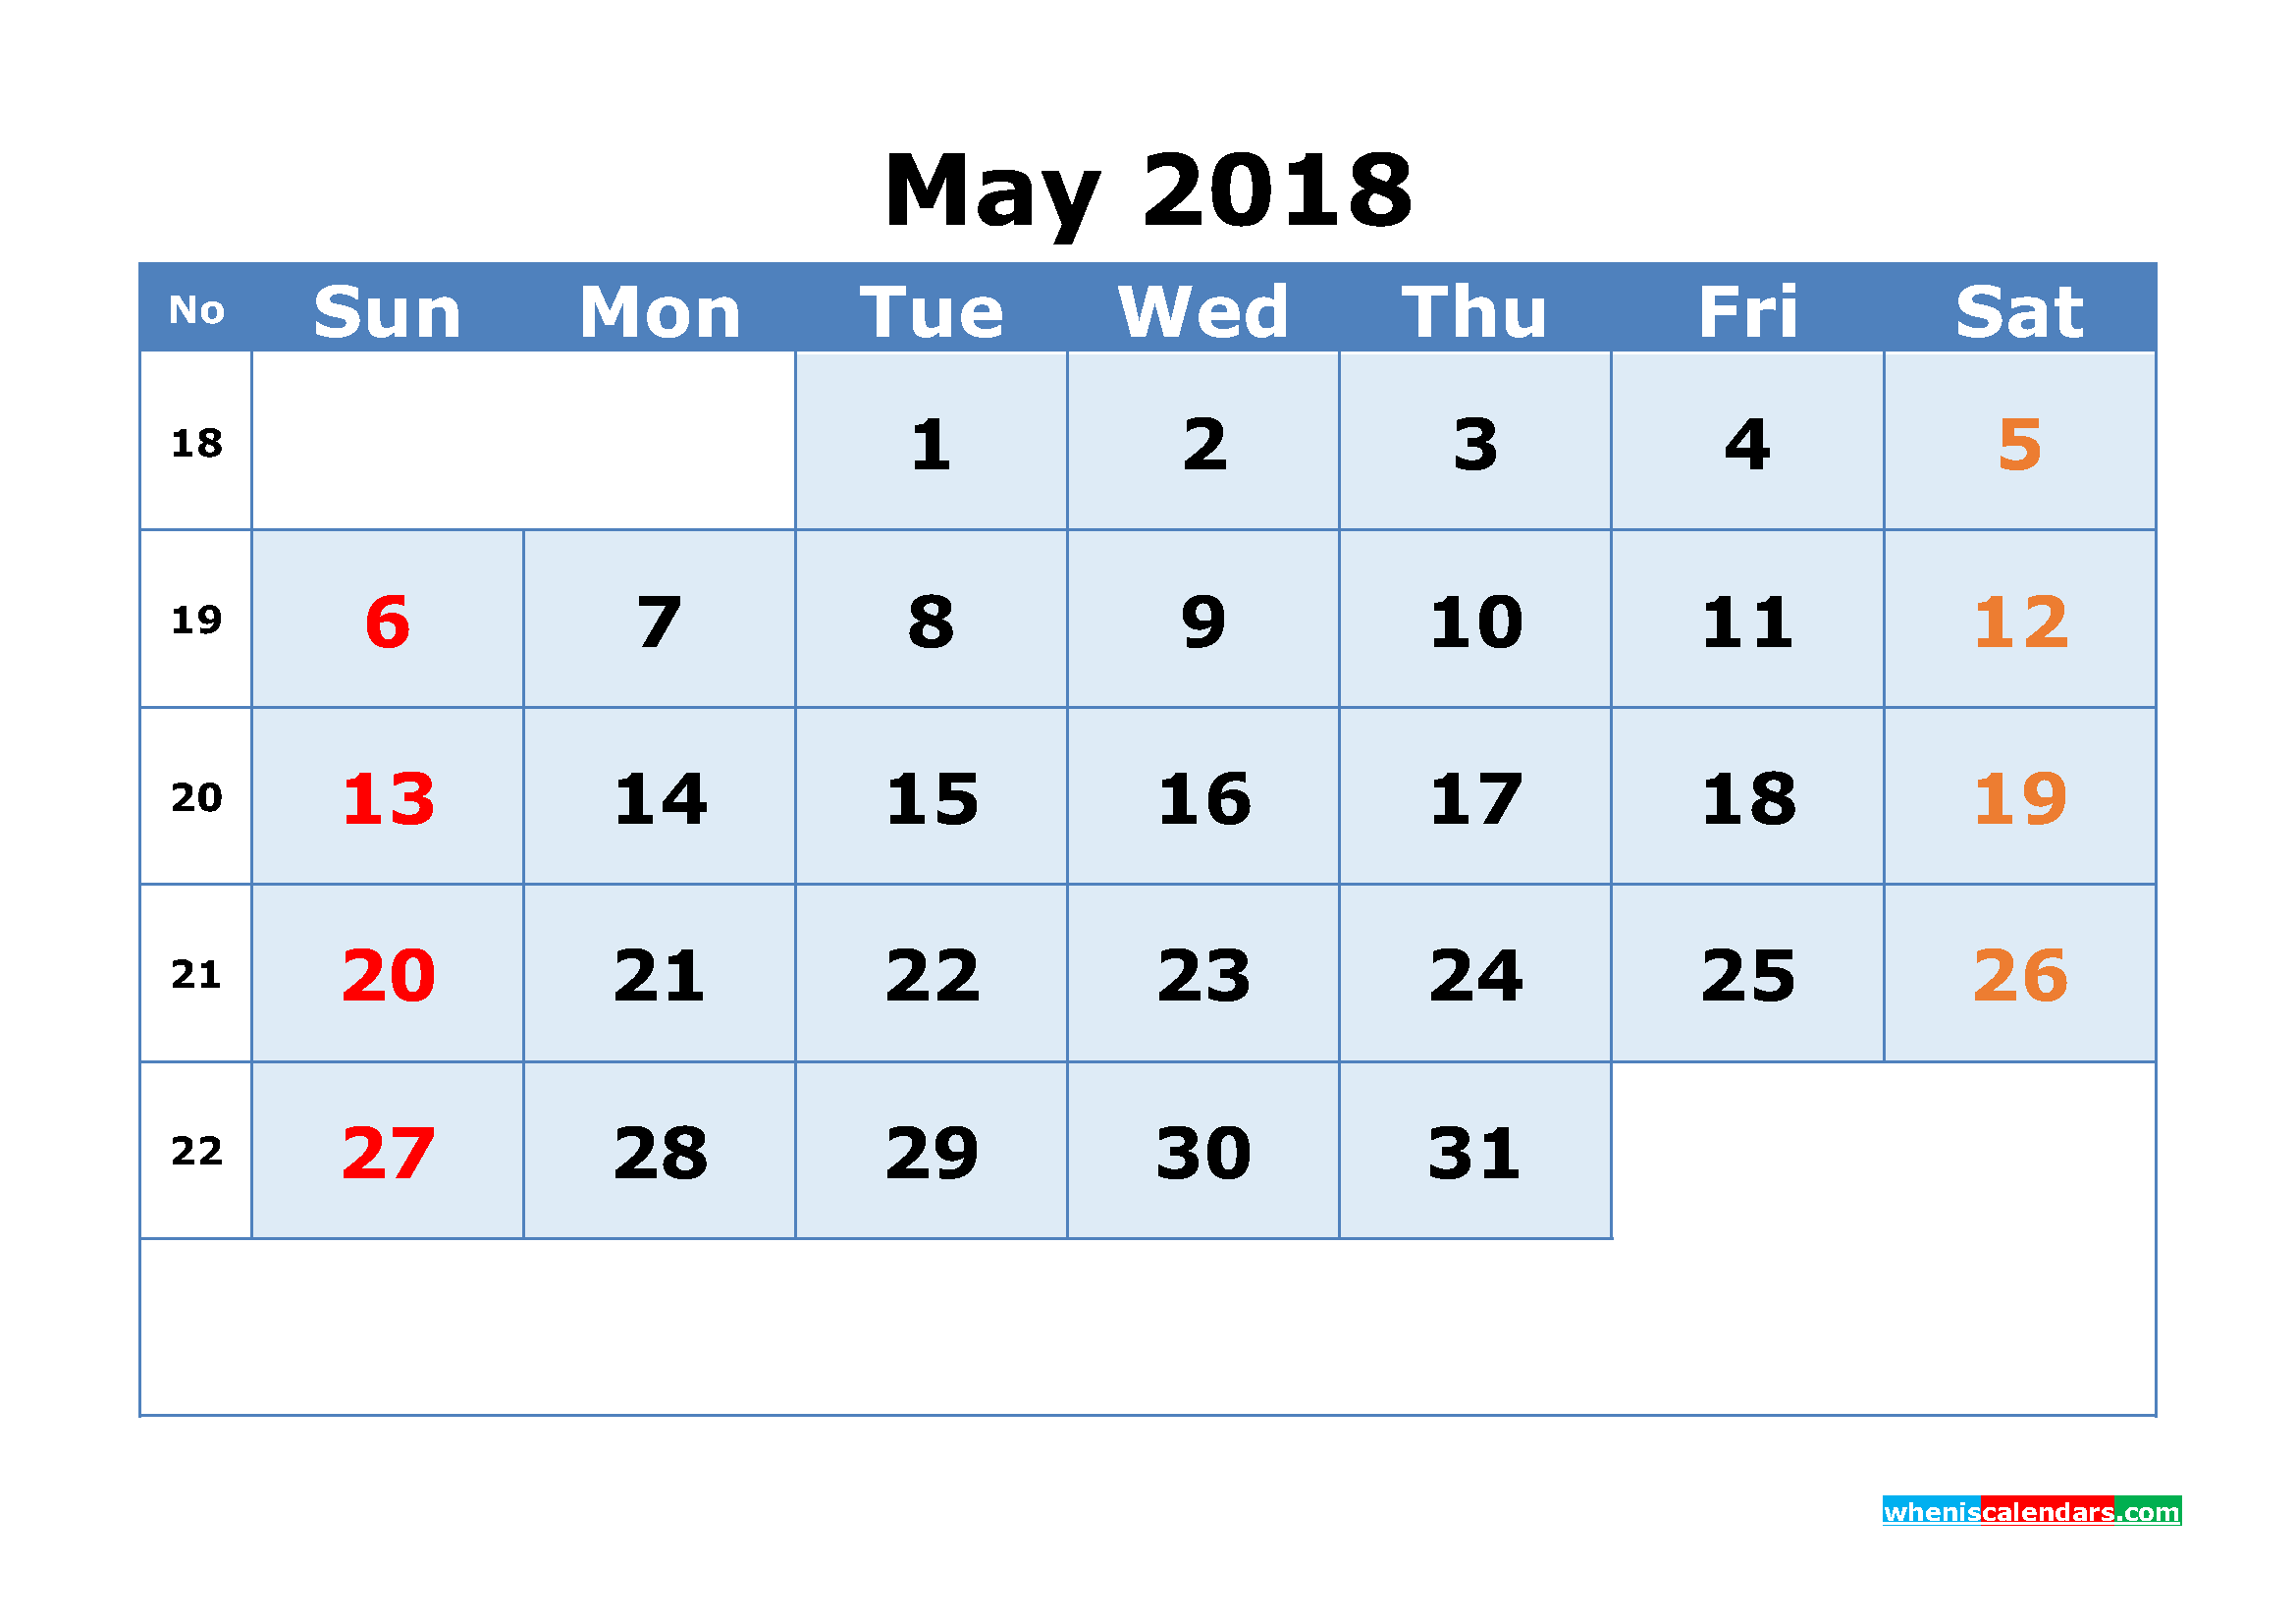 Printable Calendar May 2018 with Week Numbers as, Image